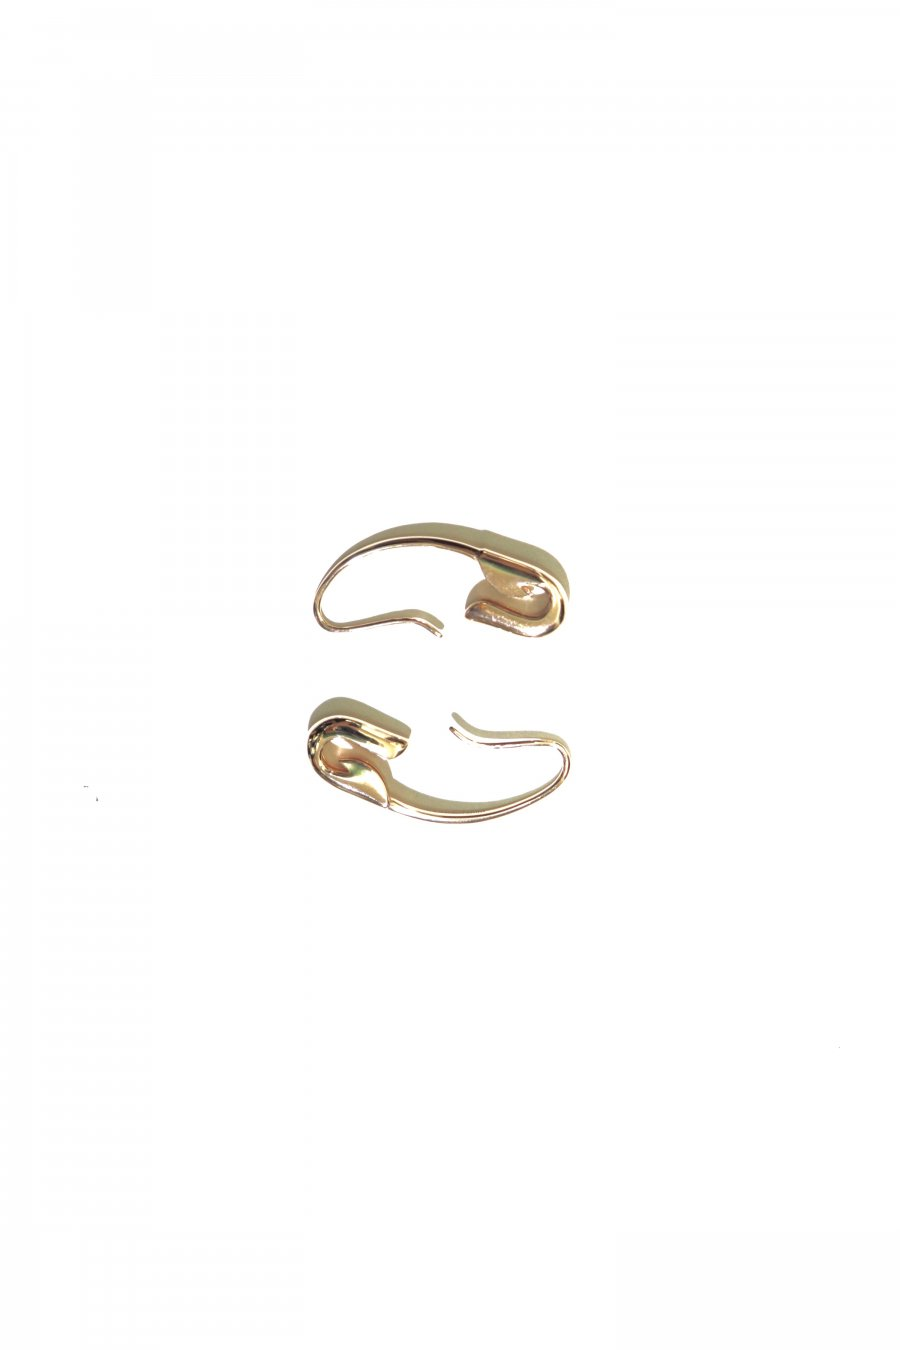 SYU.HOMME/FEMM  Safety pin pierce for silver925(Pink Gold)<img class='new_mark_img2' src='https://img.shop-pro.jp/img/new/icons15.gif' style='border:none;display:inline;margin:0px;padding:0px;width:auto;' />